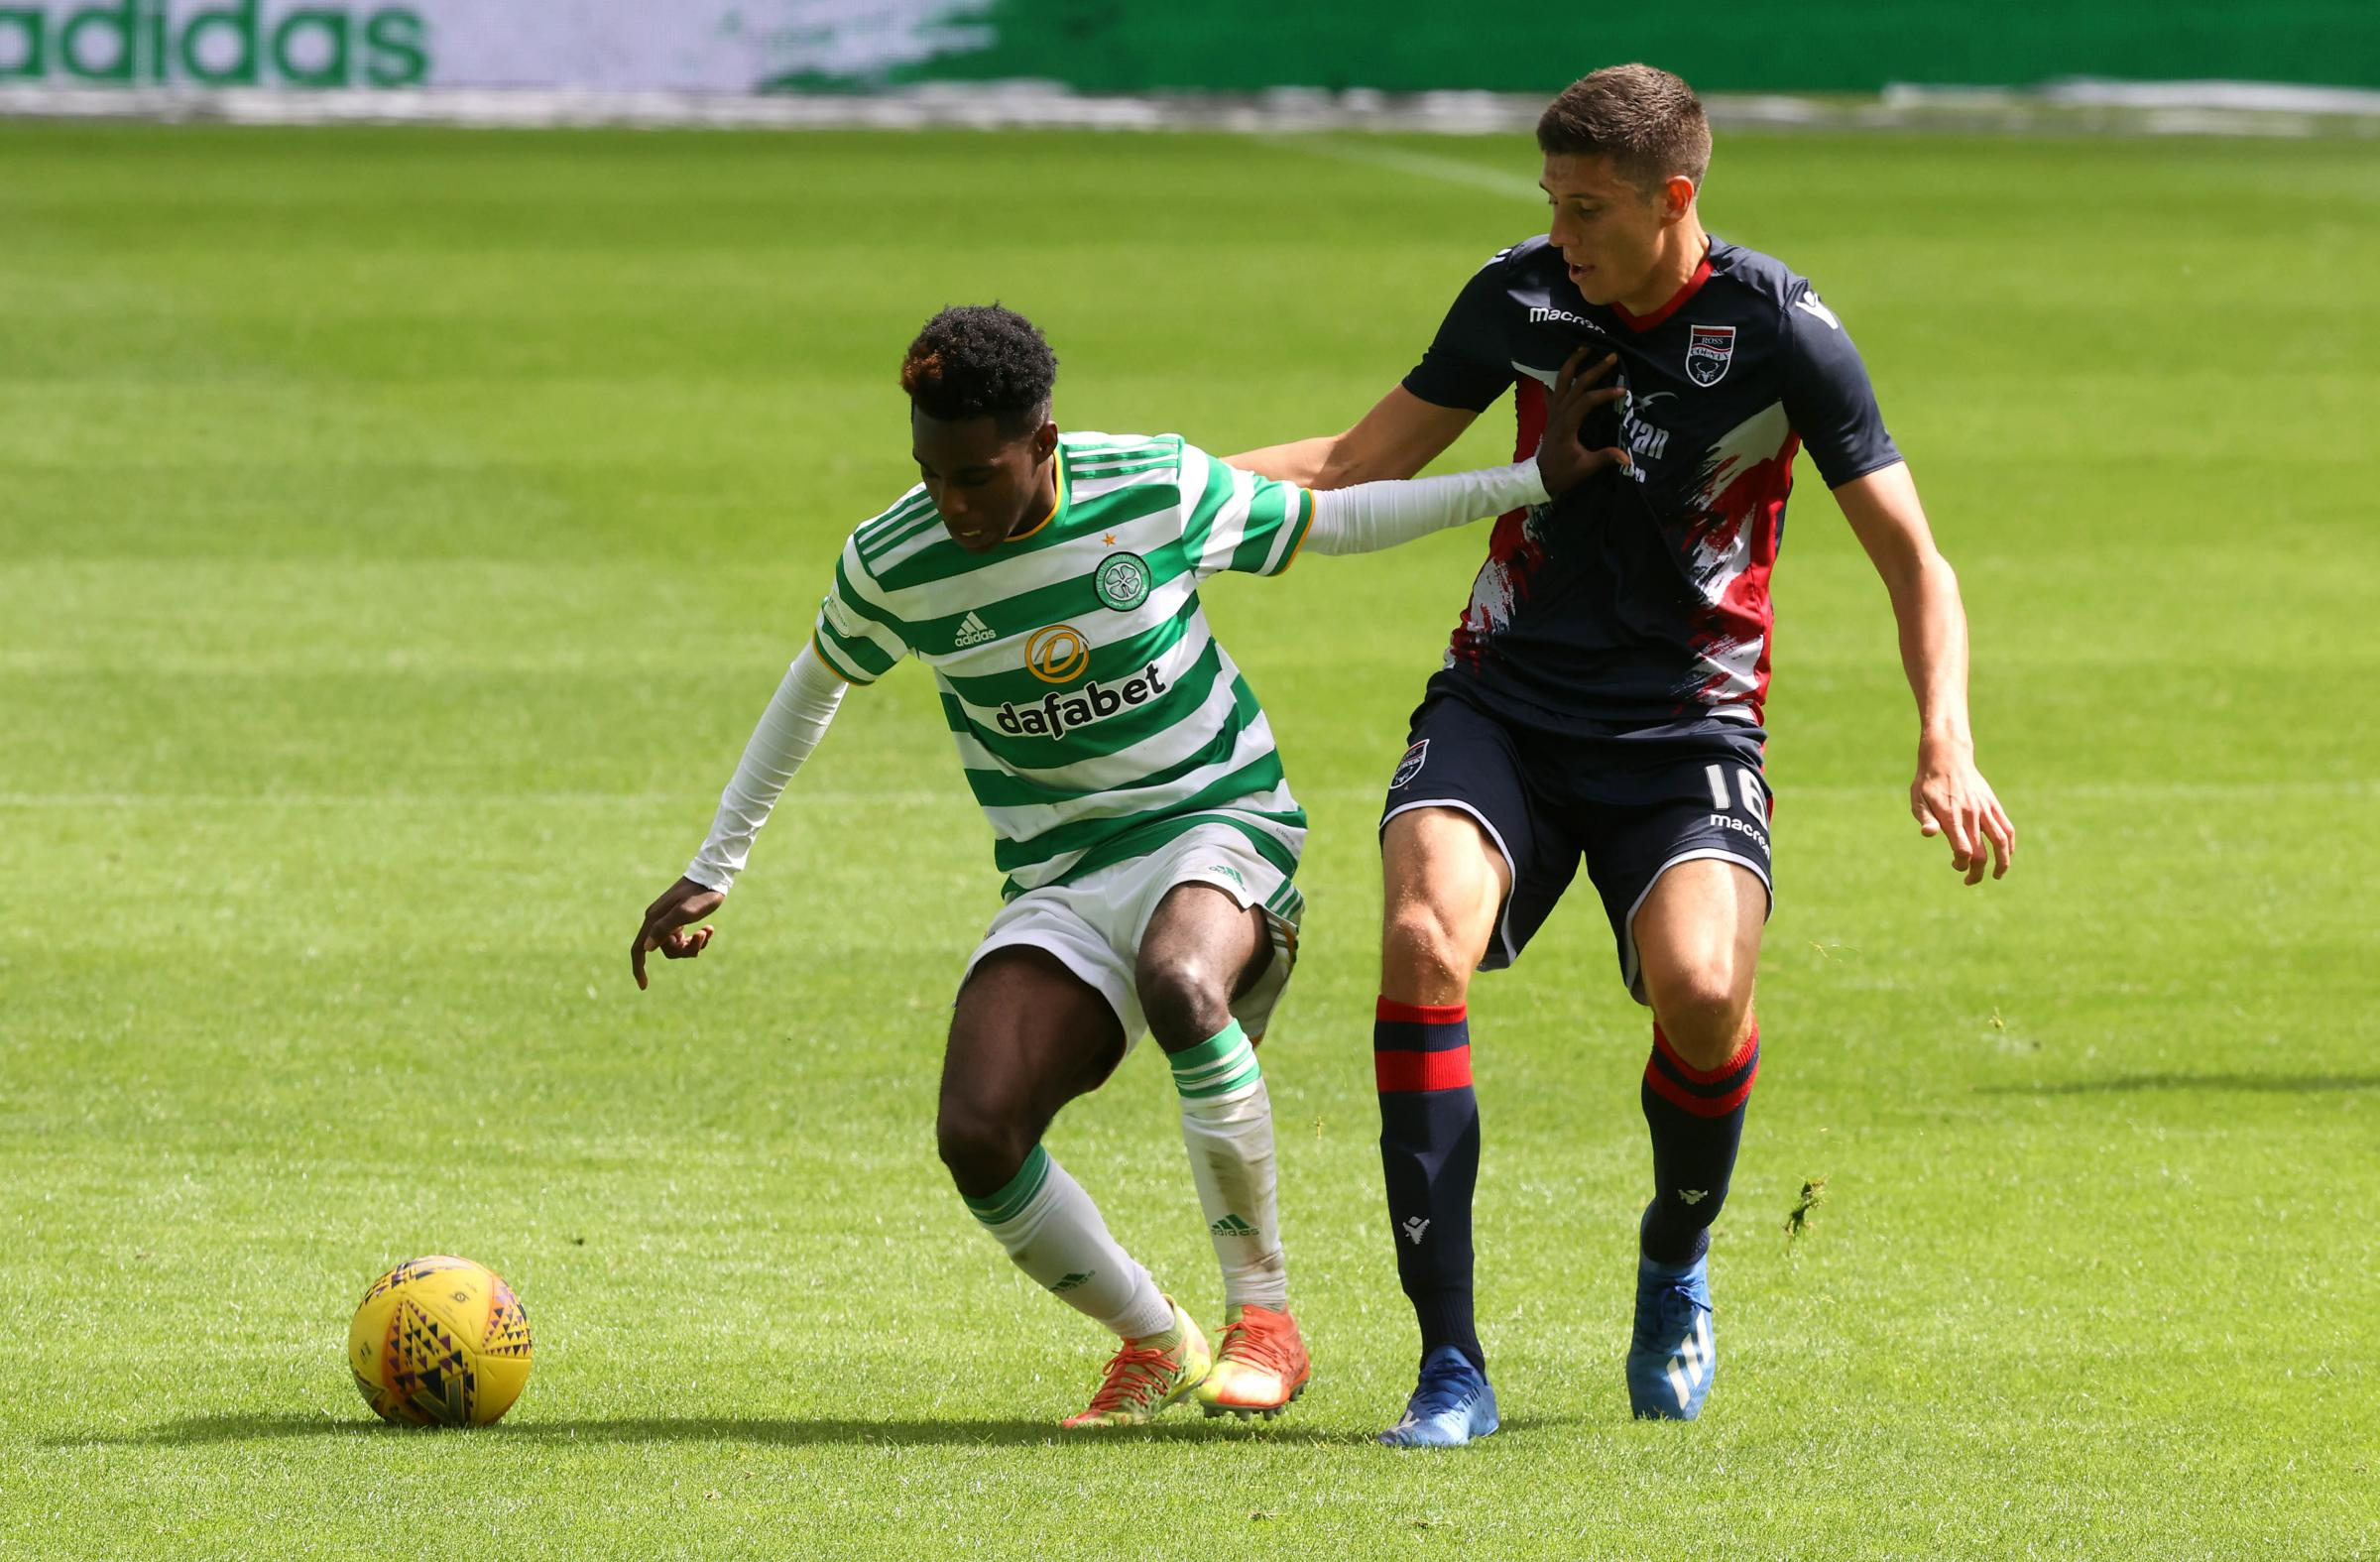 Ross County vs Celtic live stream: How to watch Scottish Premiership clash